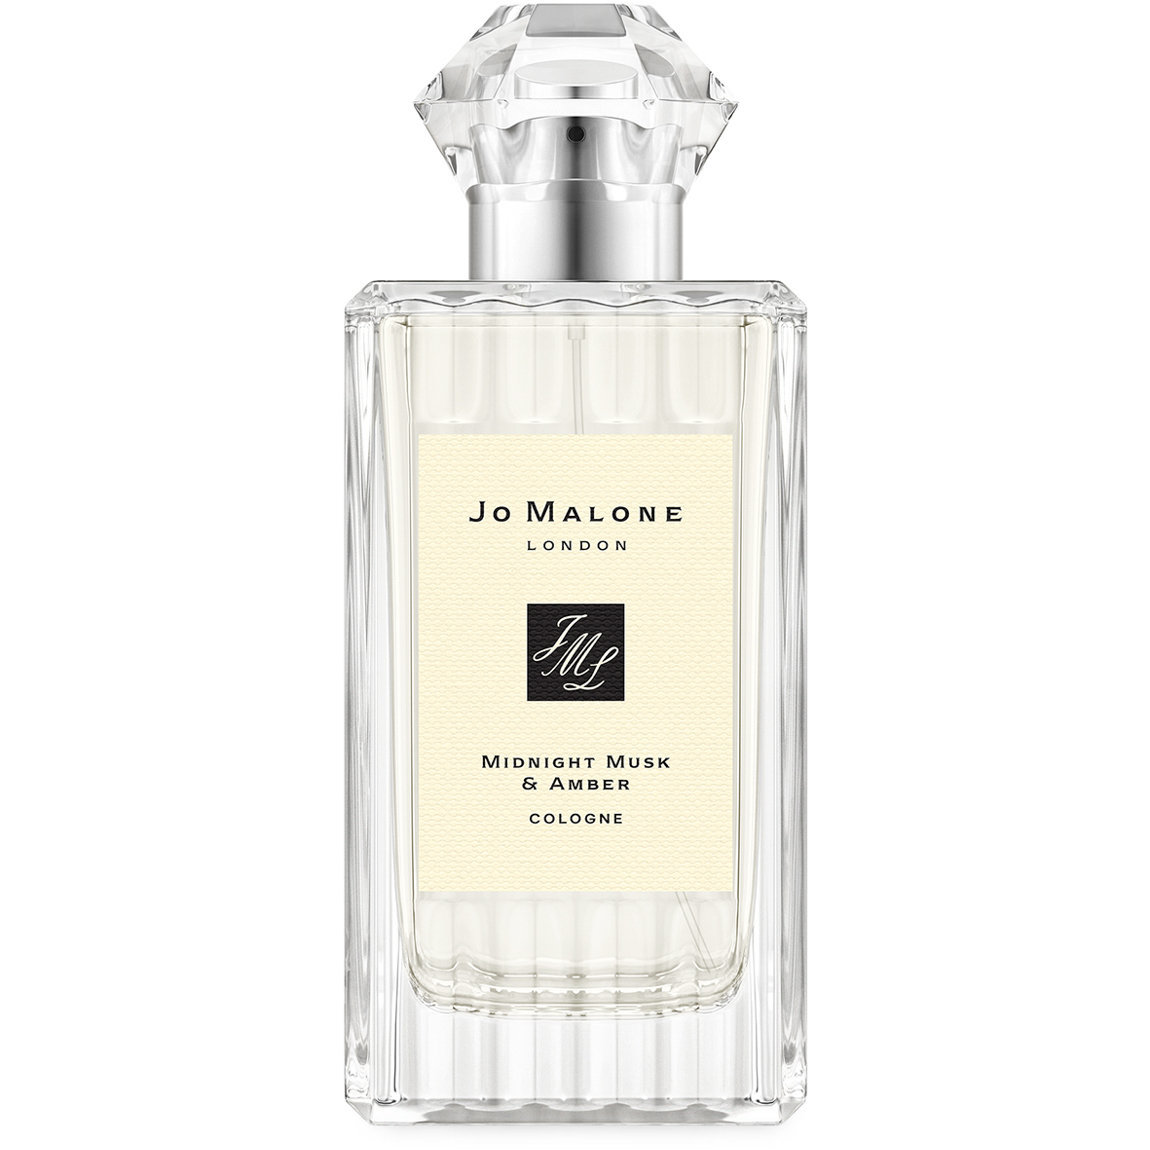 Jo Malone London Midnight Musk & Amber Cologne alternative view 1 - product swatch.